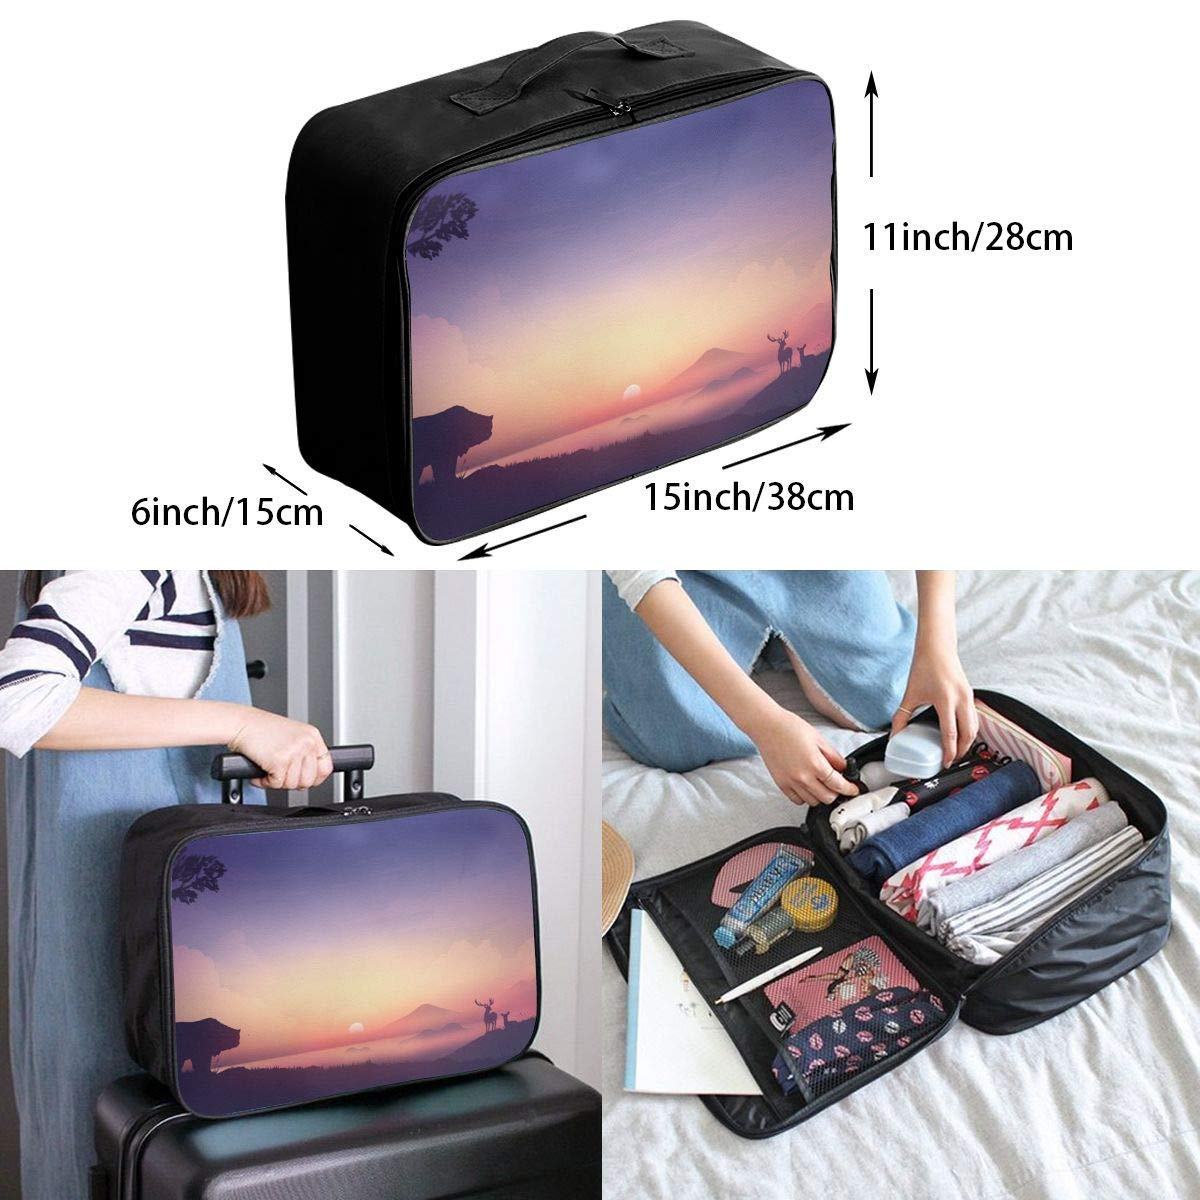 JTRVW Luggage Bags for Travel Lightweight Large Capacity Portable Duffel Bag for Men /& Women Sunset Bear And Deers Travel Duffel Bag Backpack